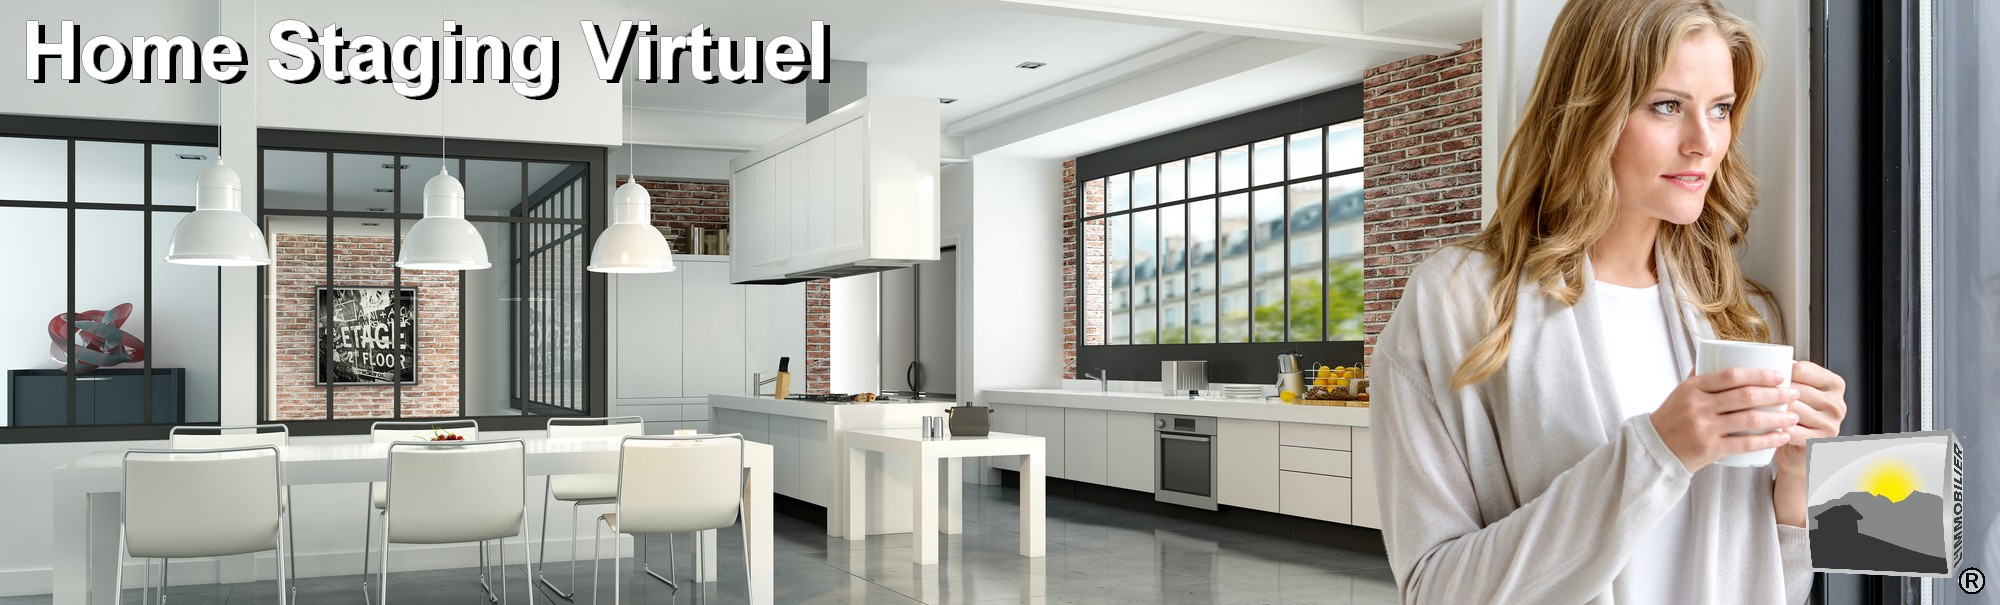 Agence Immobilière Home Staging home staging virtuel